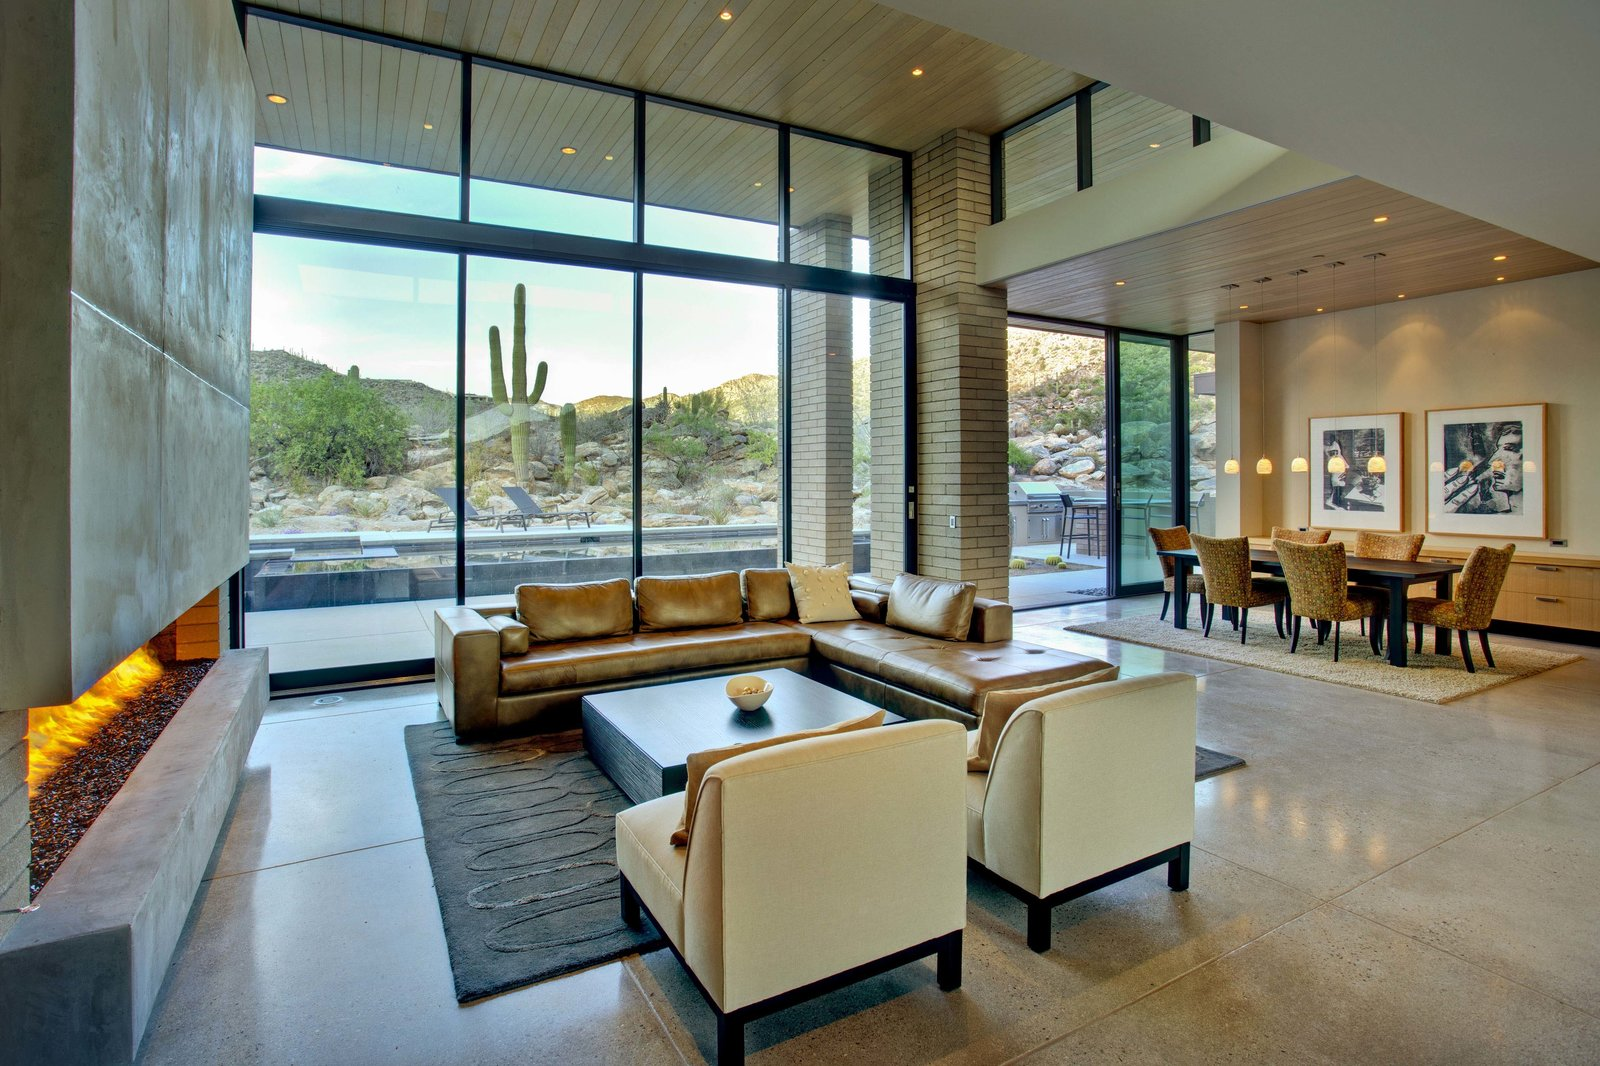 Living Room, Ribbon Fireplace, Recessed Lighting, Gas Burning Fireplace, Concrete Floor, Chair, Sofa, Sectional, and Coffee Tables  Desert Mountain Home by Kevin B Howard Architects